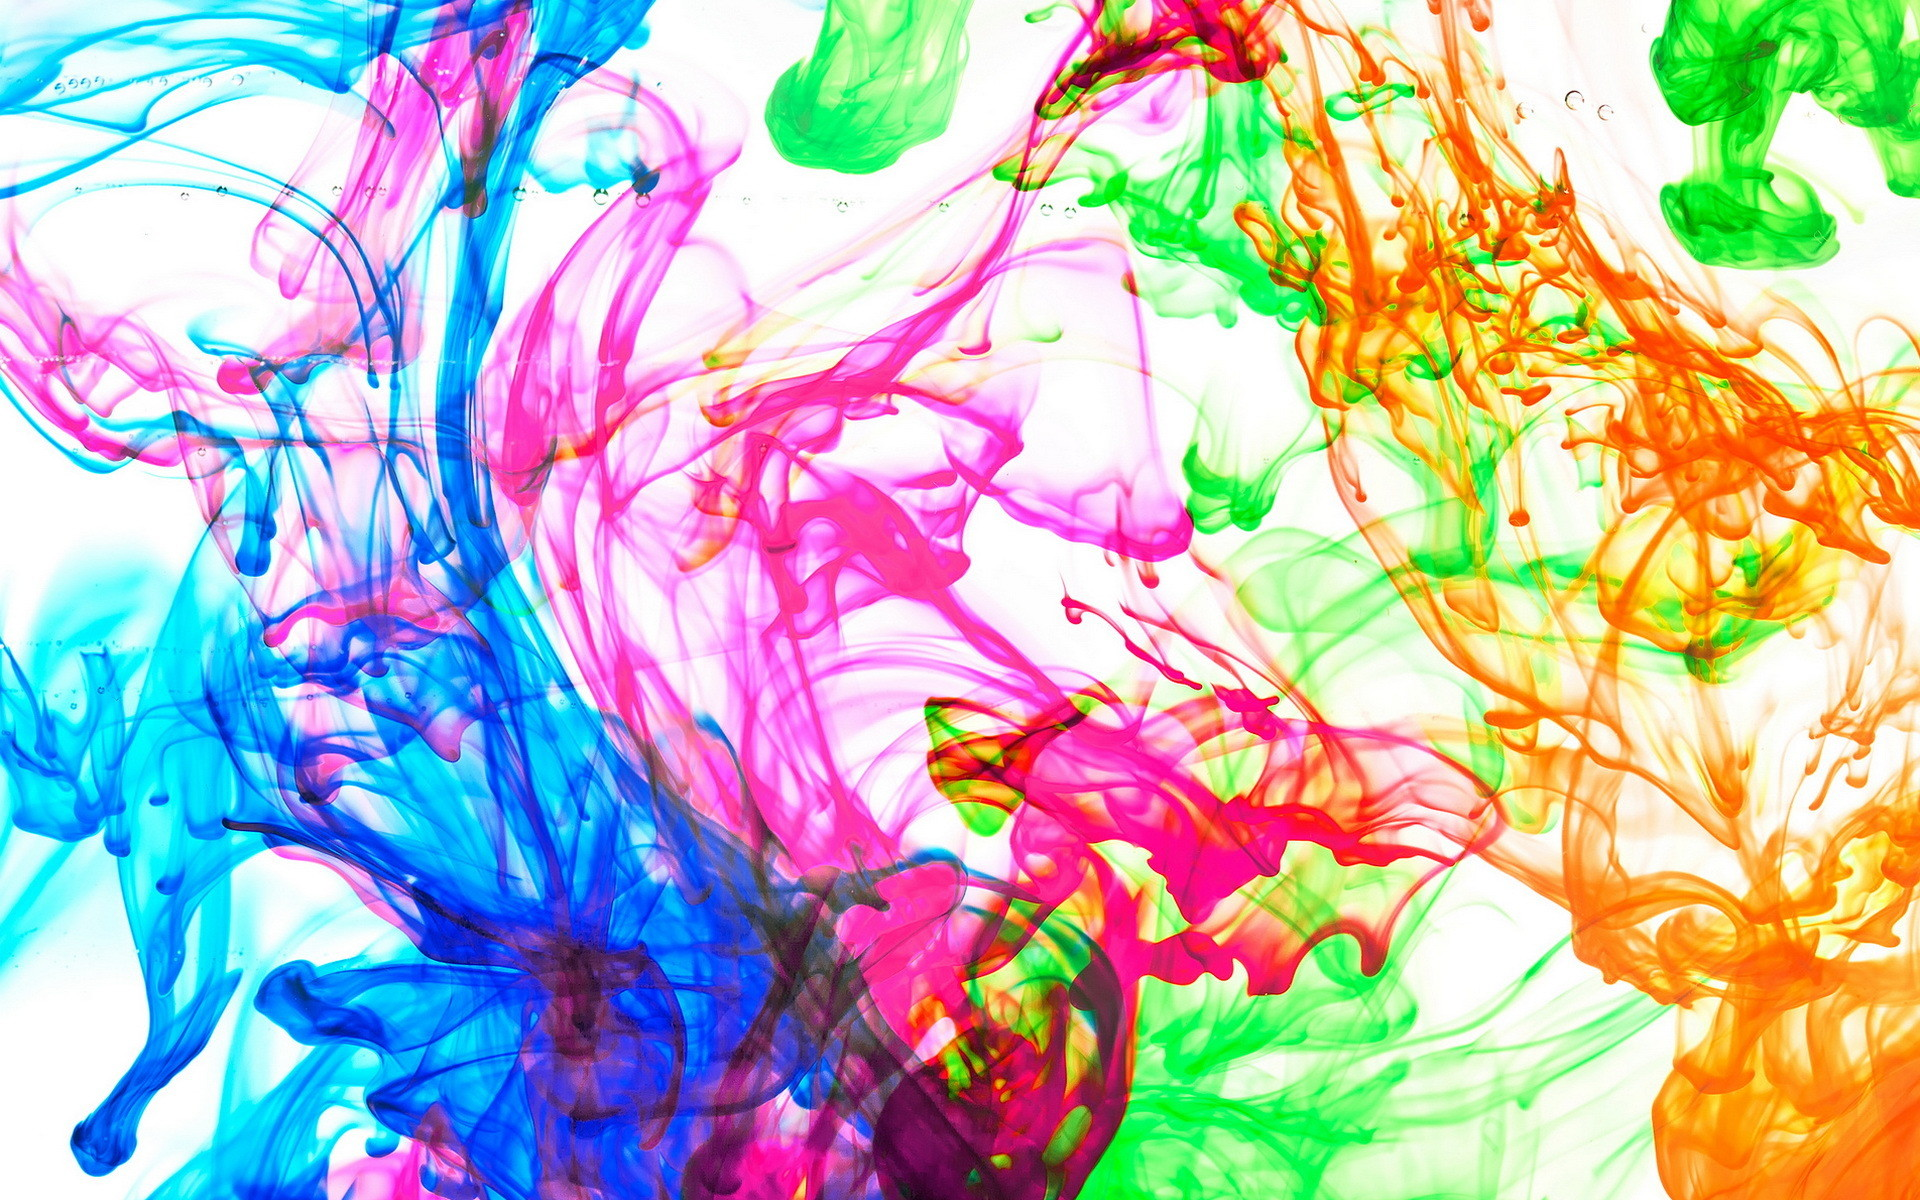 Splatter Paint Wallpaper ·①